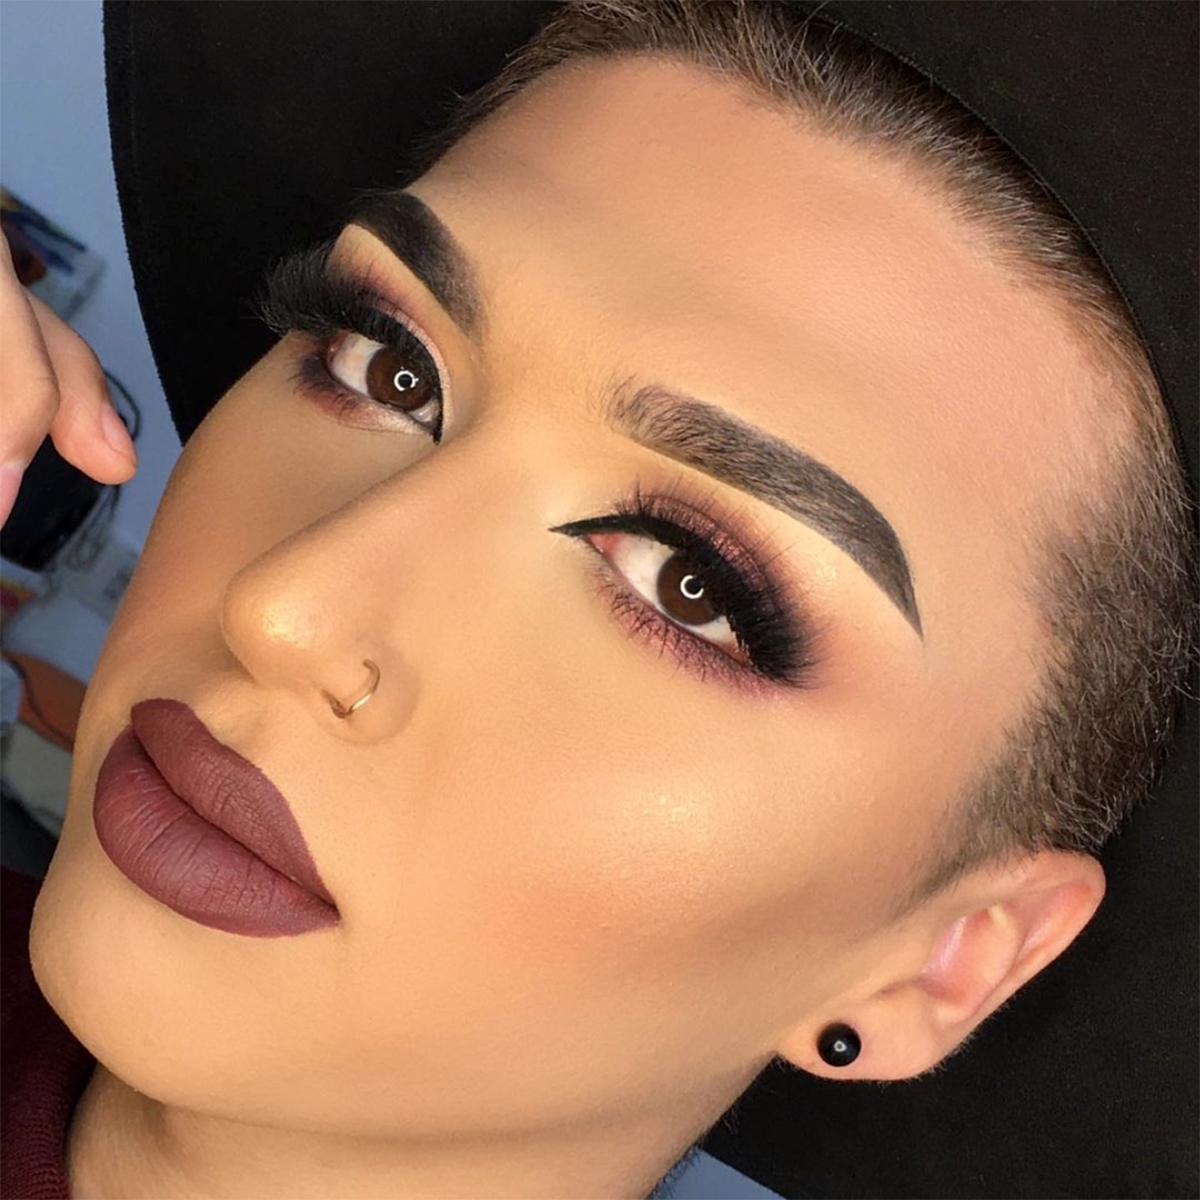 On 🔥 FIRE 🔥 @eduardoaf_makeup used our #MyBFF Matte Concealer for flawless skin - It completely  covers dark circles, pigmentation, redness, and acne. ($5)  What are your weaknesses?! 🤔 Visit our website and say goodbye to skin blemishes!  #amorus #AmorusSweetheart #repost